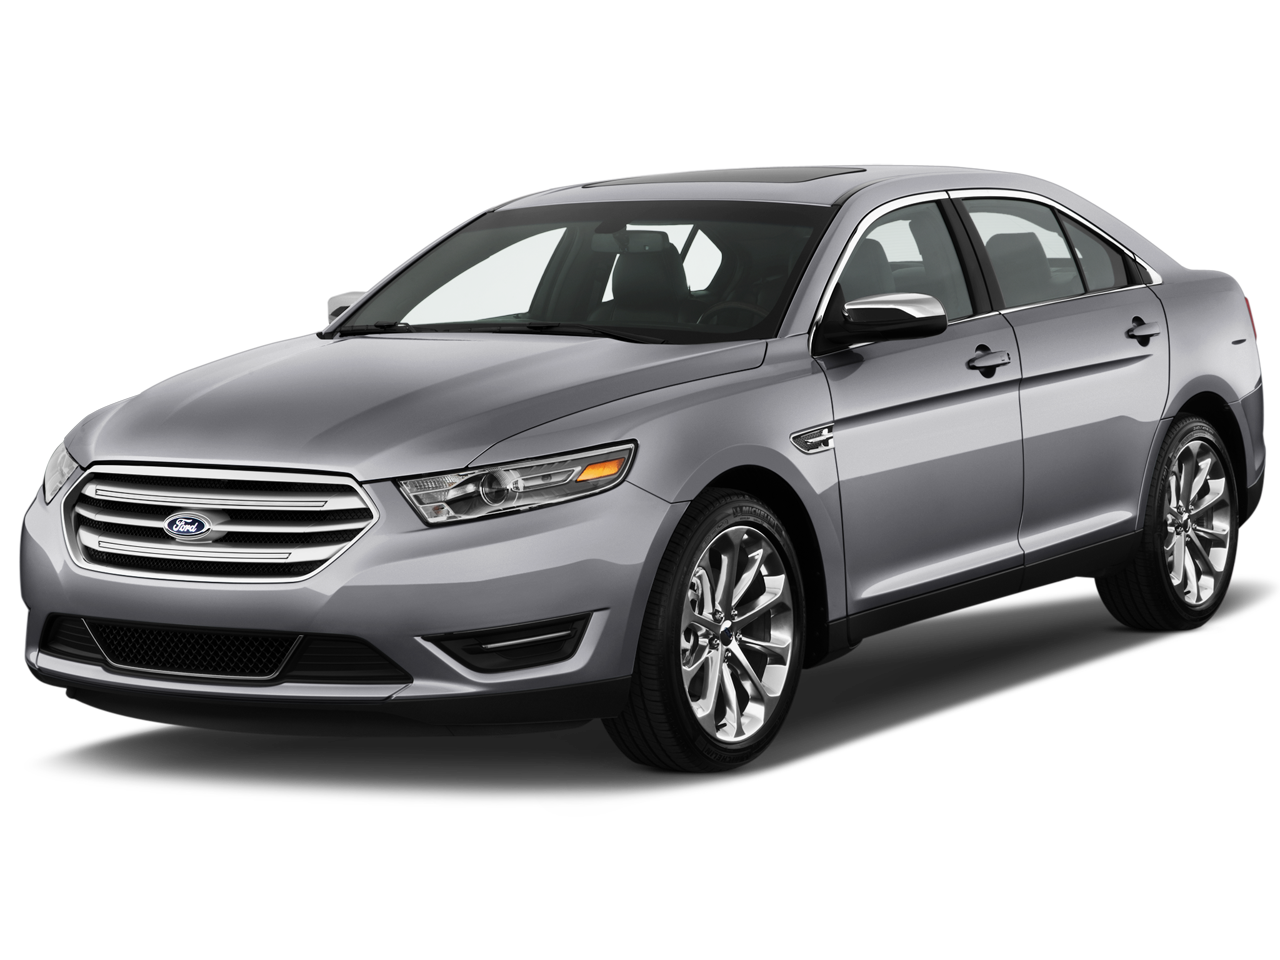 new 2016 ford taurus limited near joliet il auto mall matteson. Black Bedroom Furniture Sets. Home Design Ideas